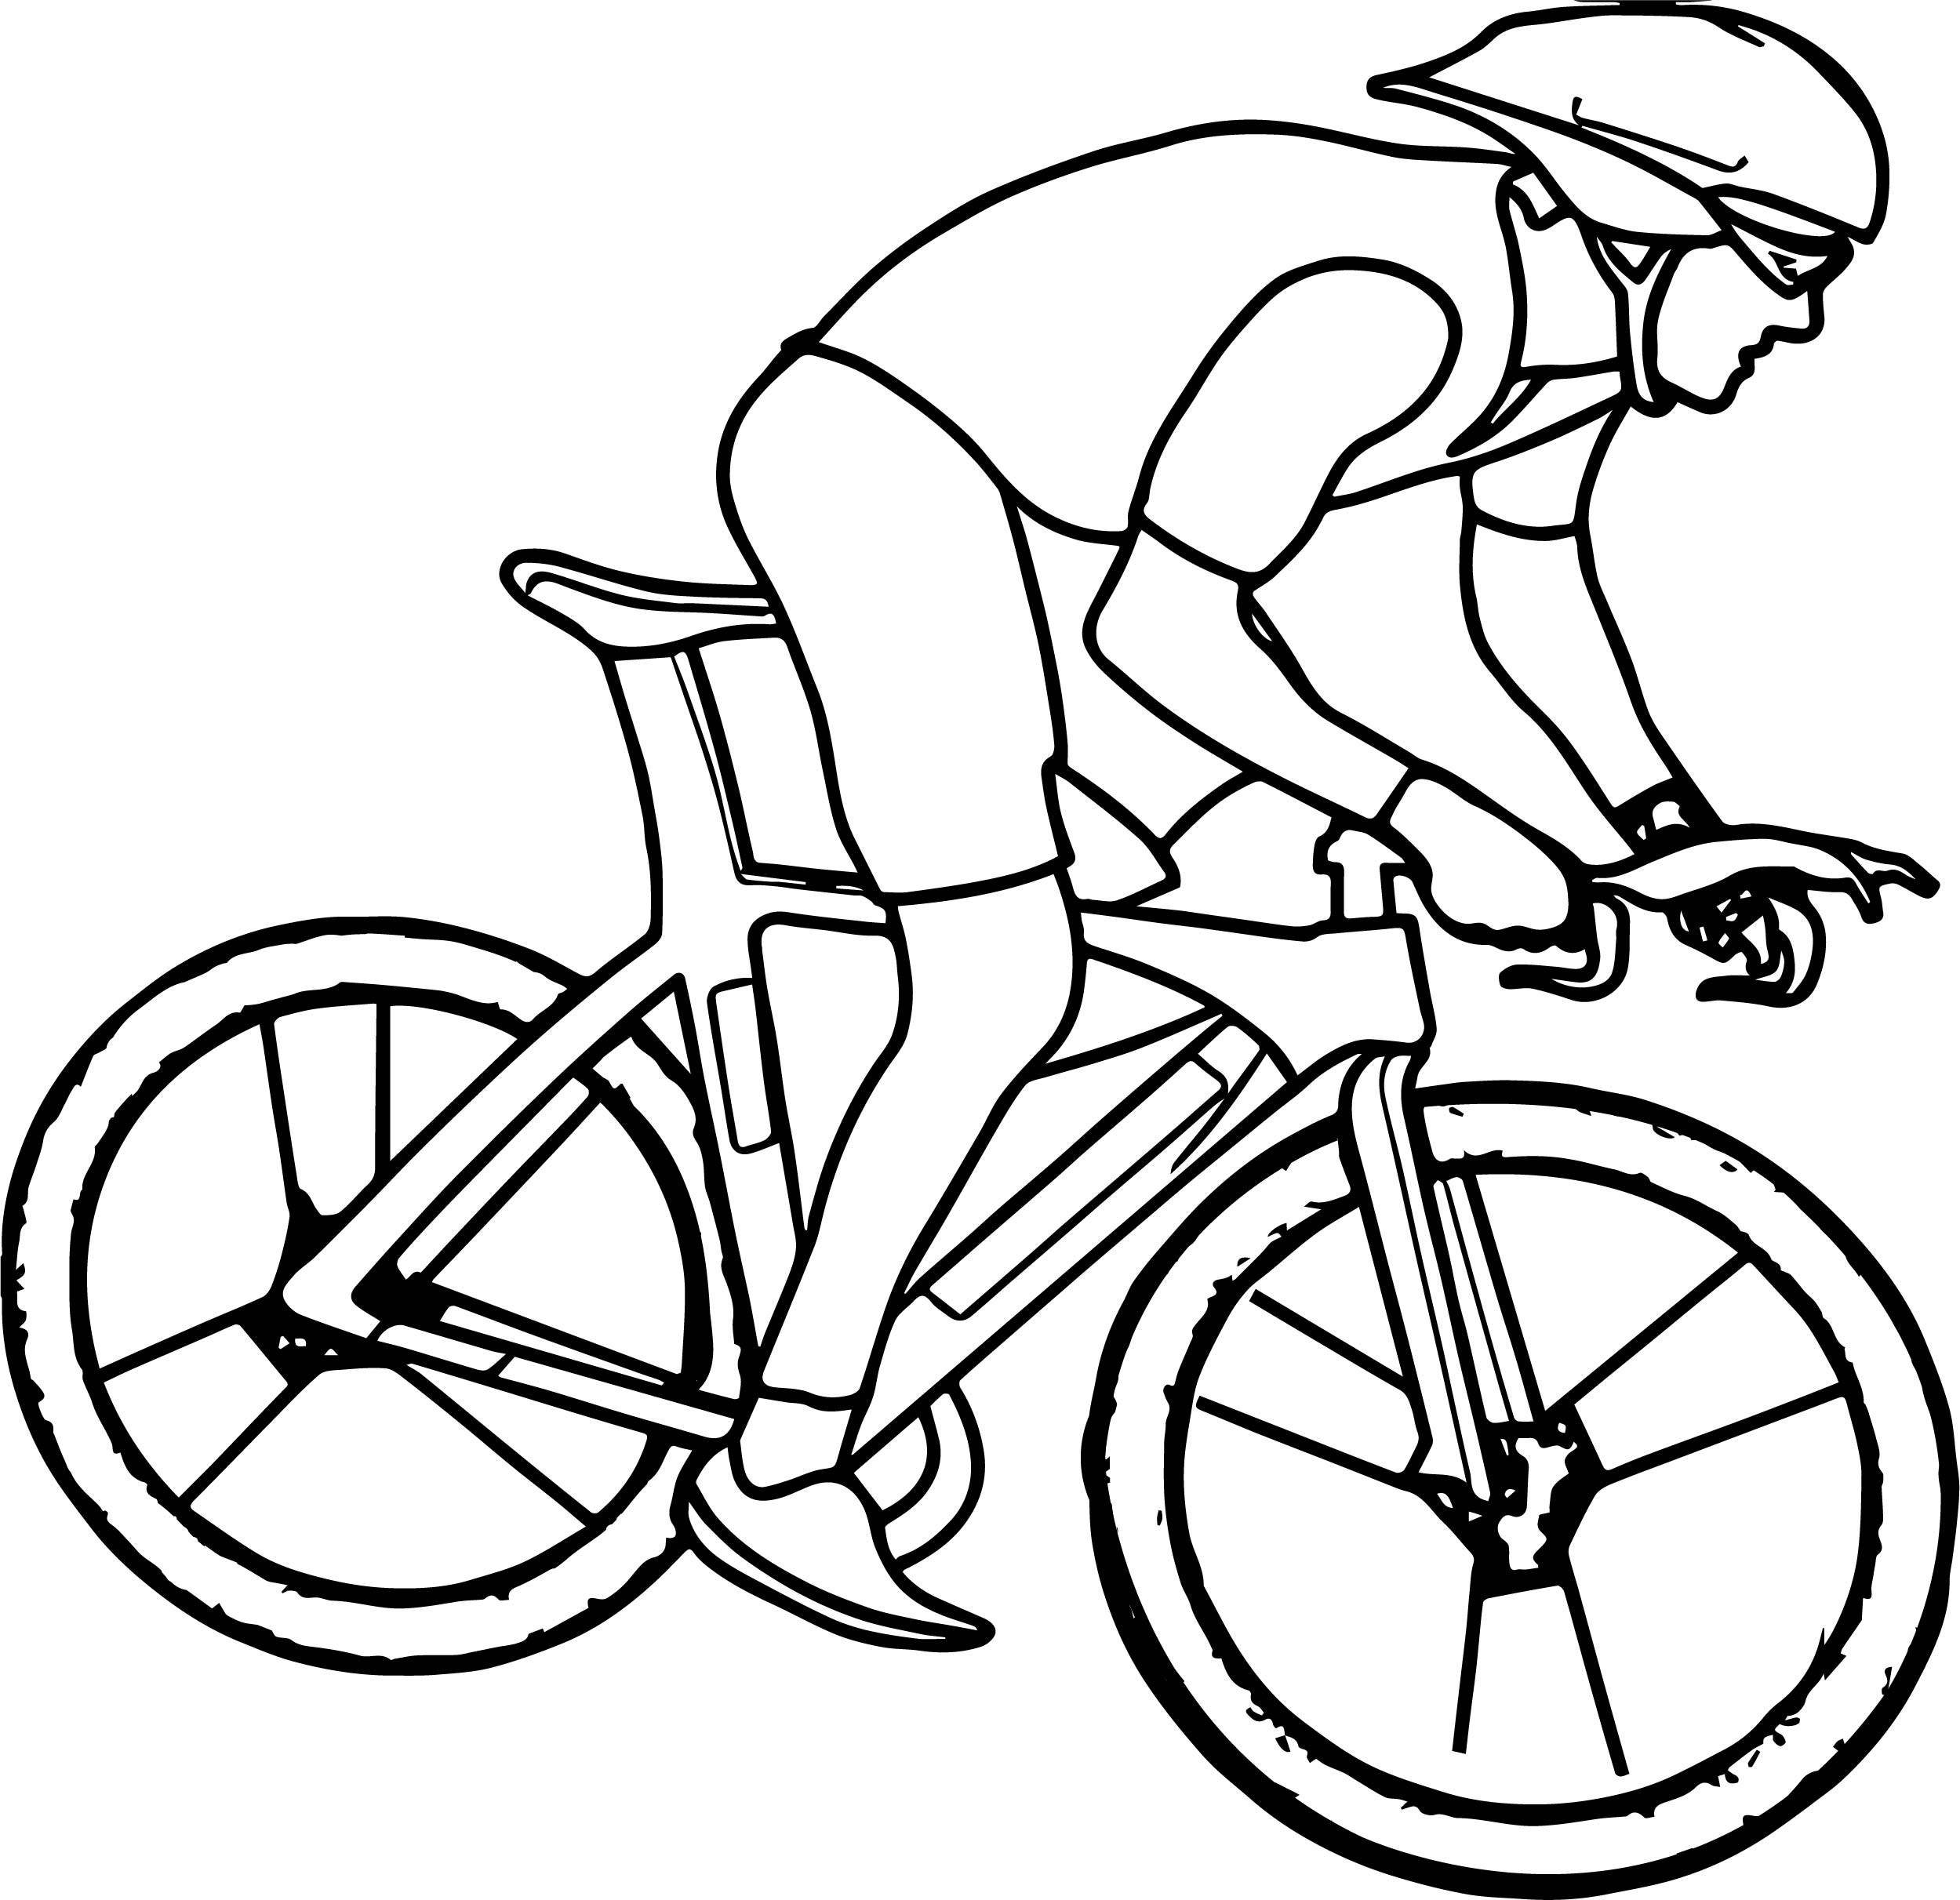 Cycling Bike Coloring Page Wecoloringpage